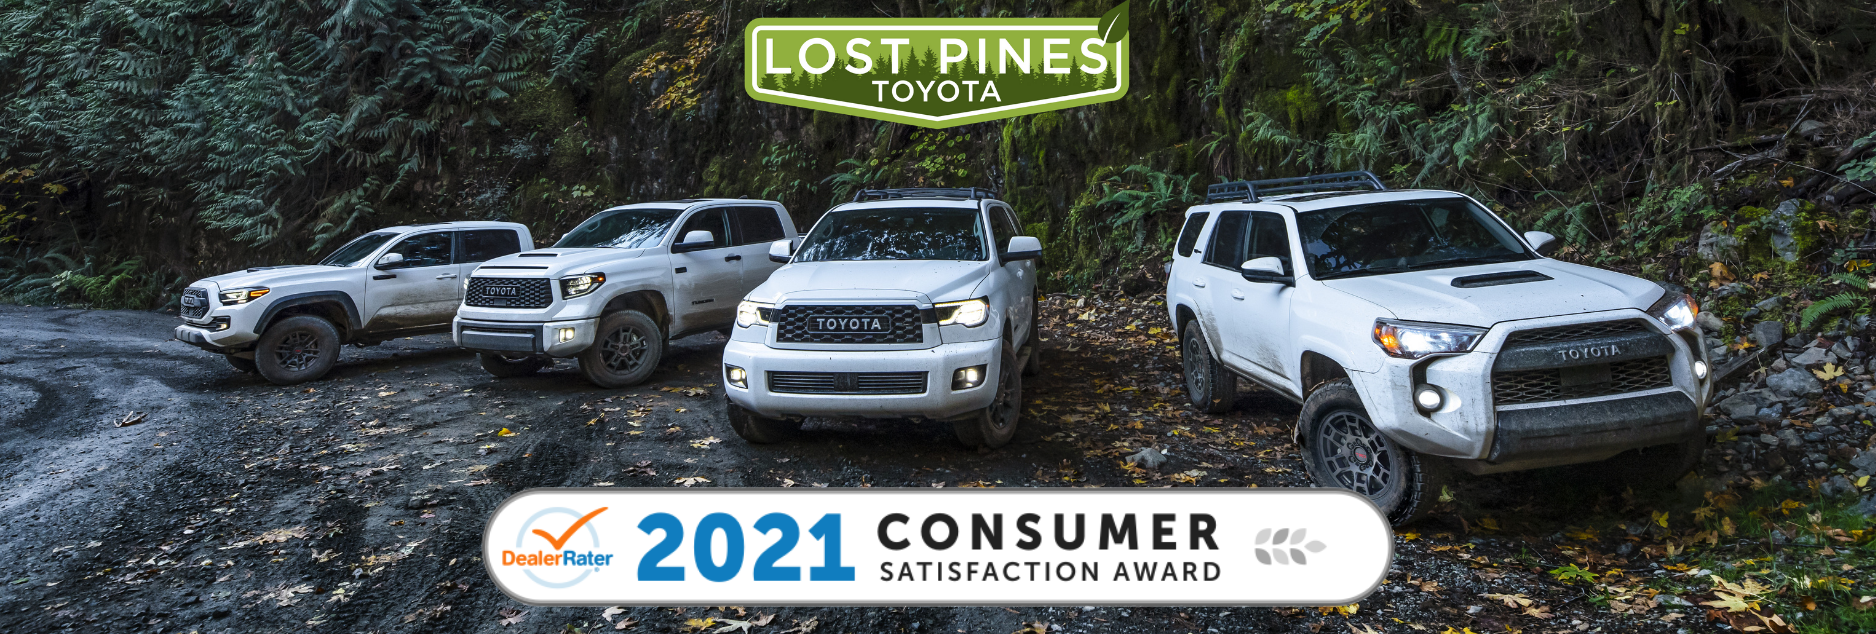 Lost Pines Toyota wins DealerRater Award